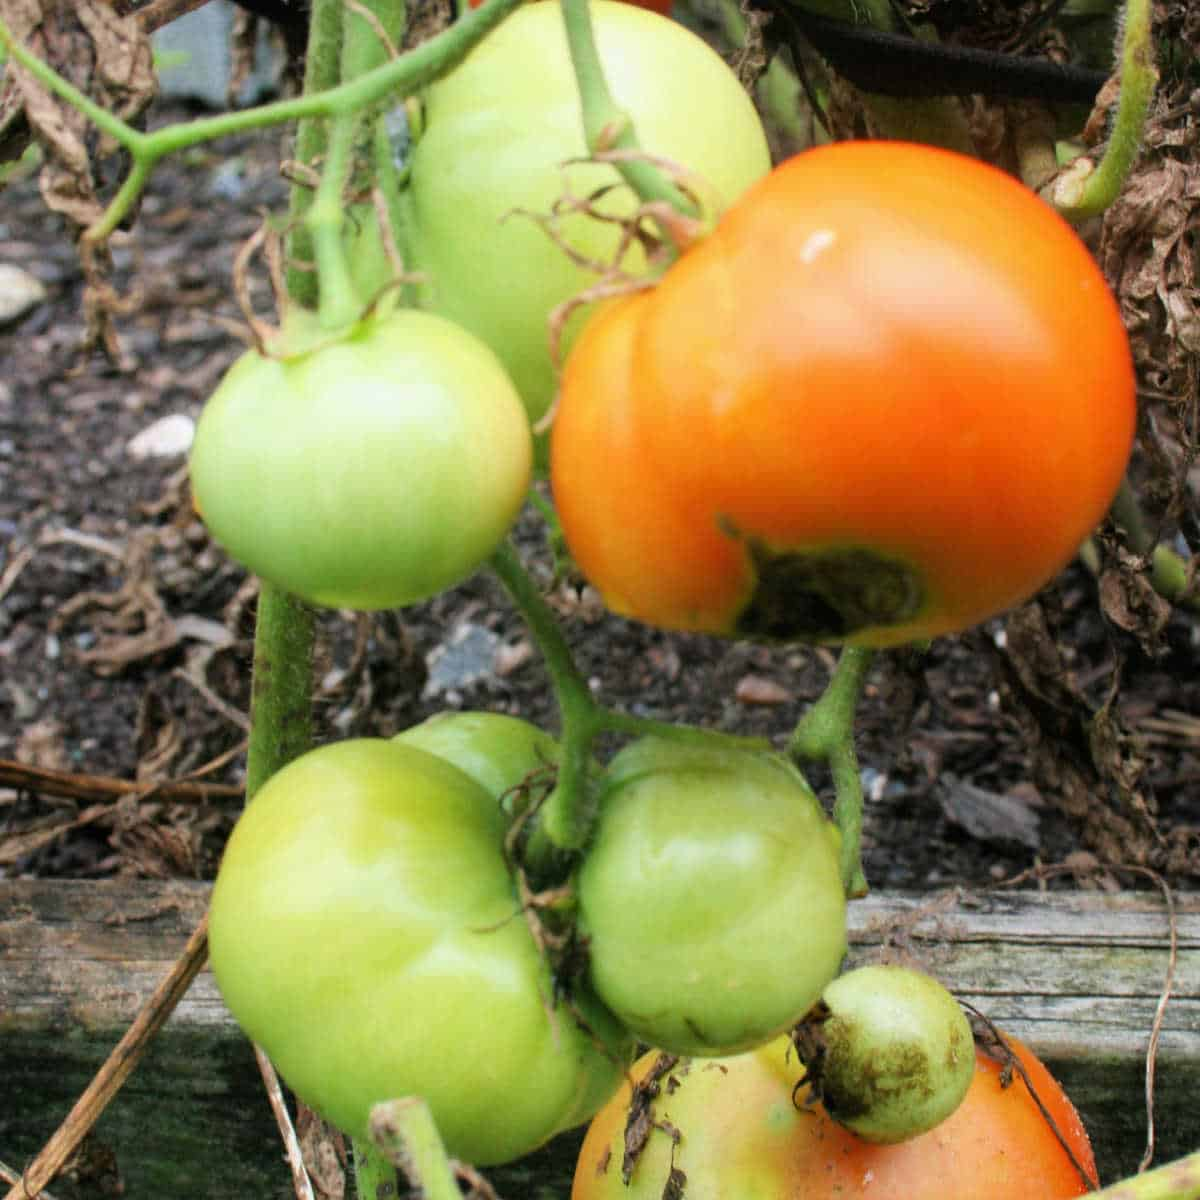 green tomatoes and one red tomato with blossom end rot still on the plant